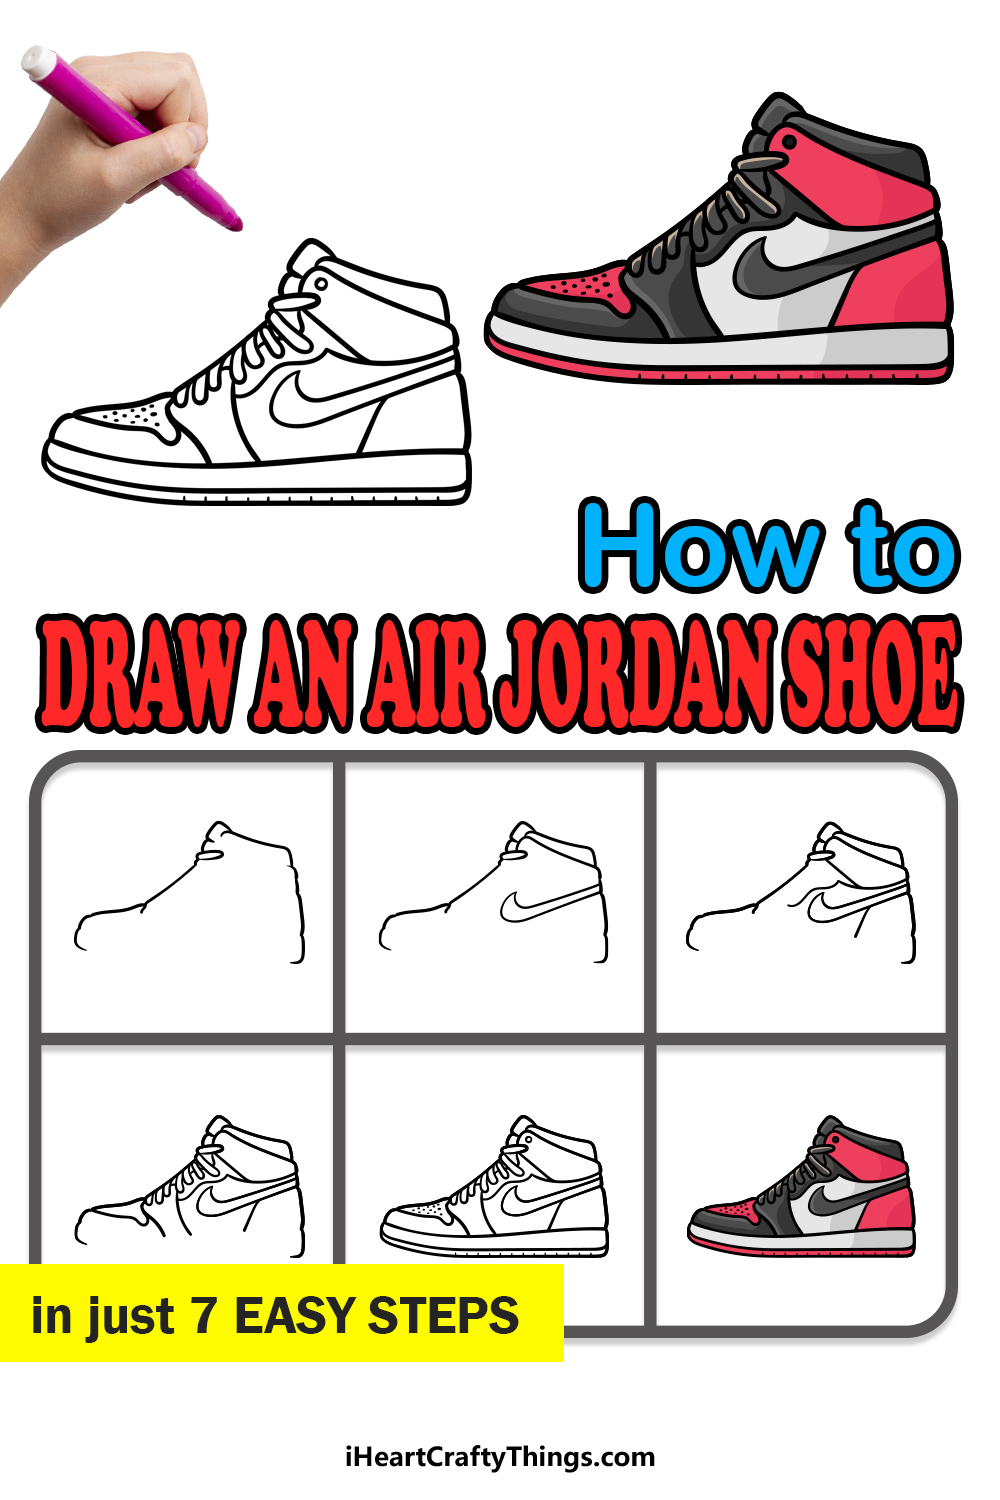 how to draw an air jordan shoe in 7 easy steps